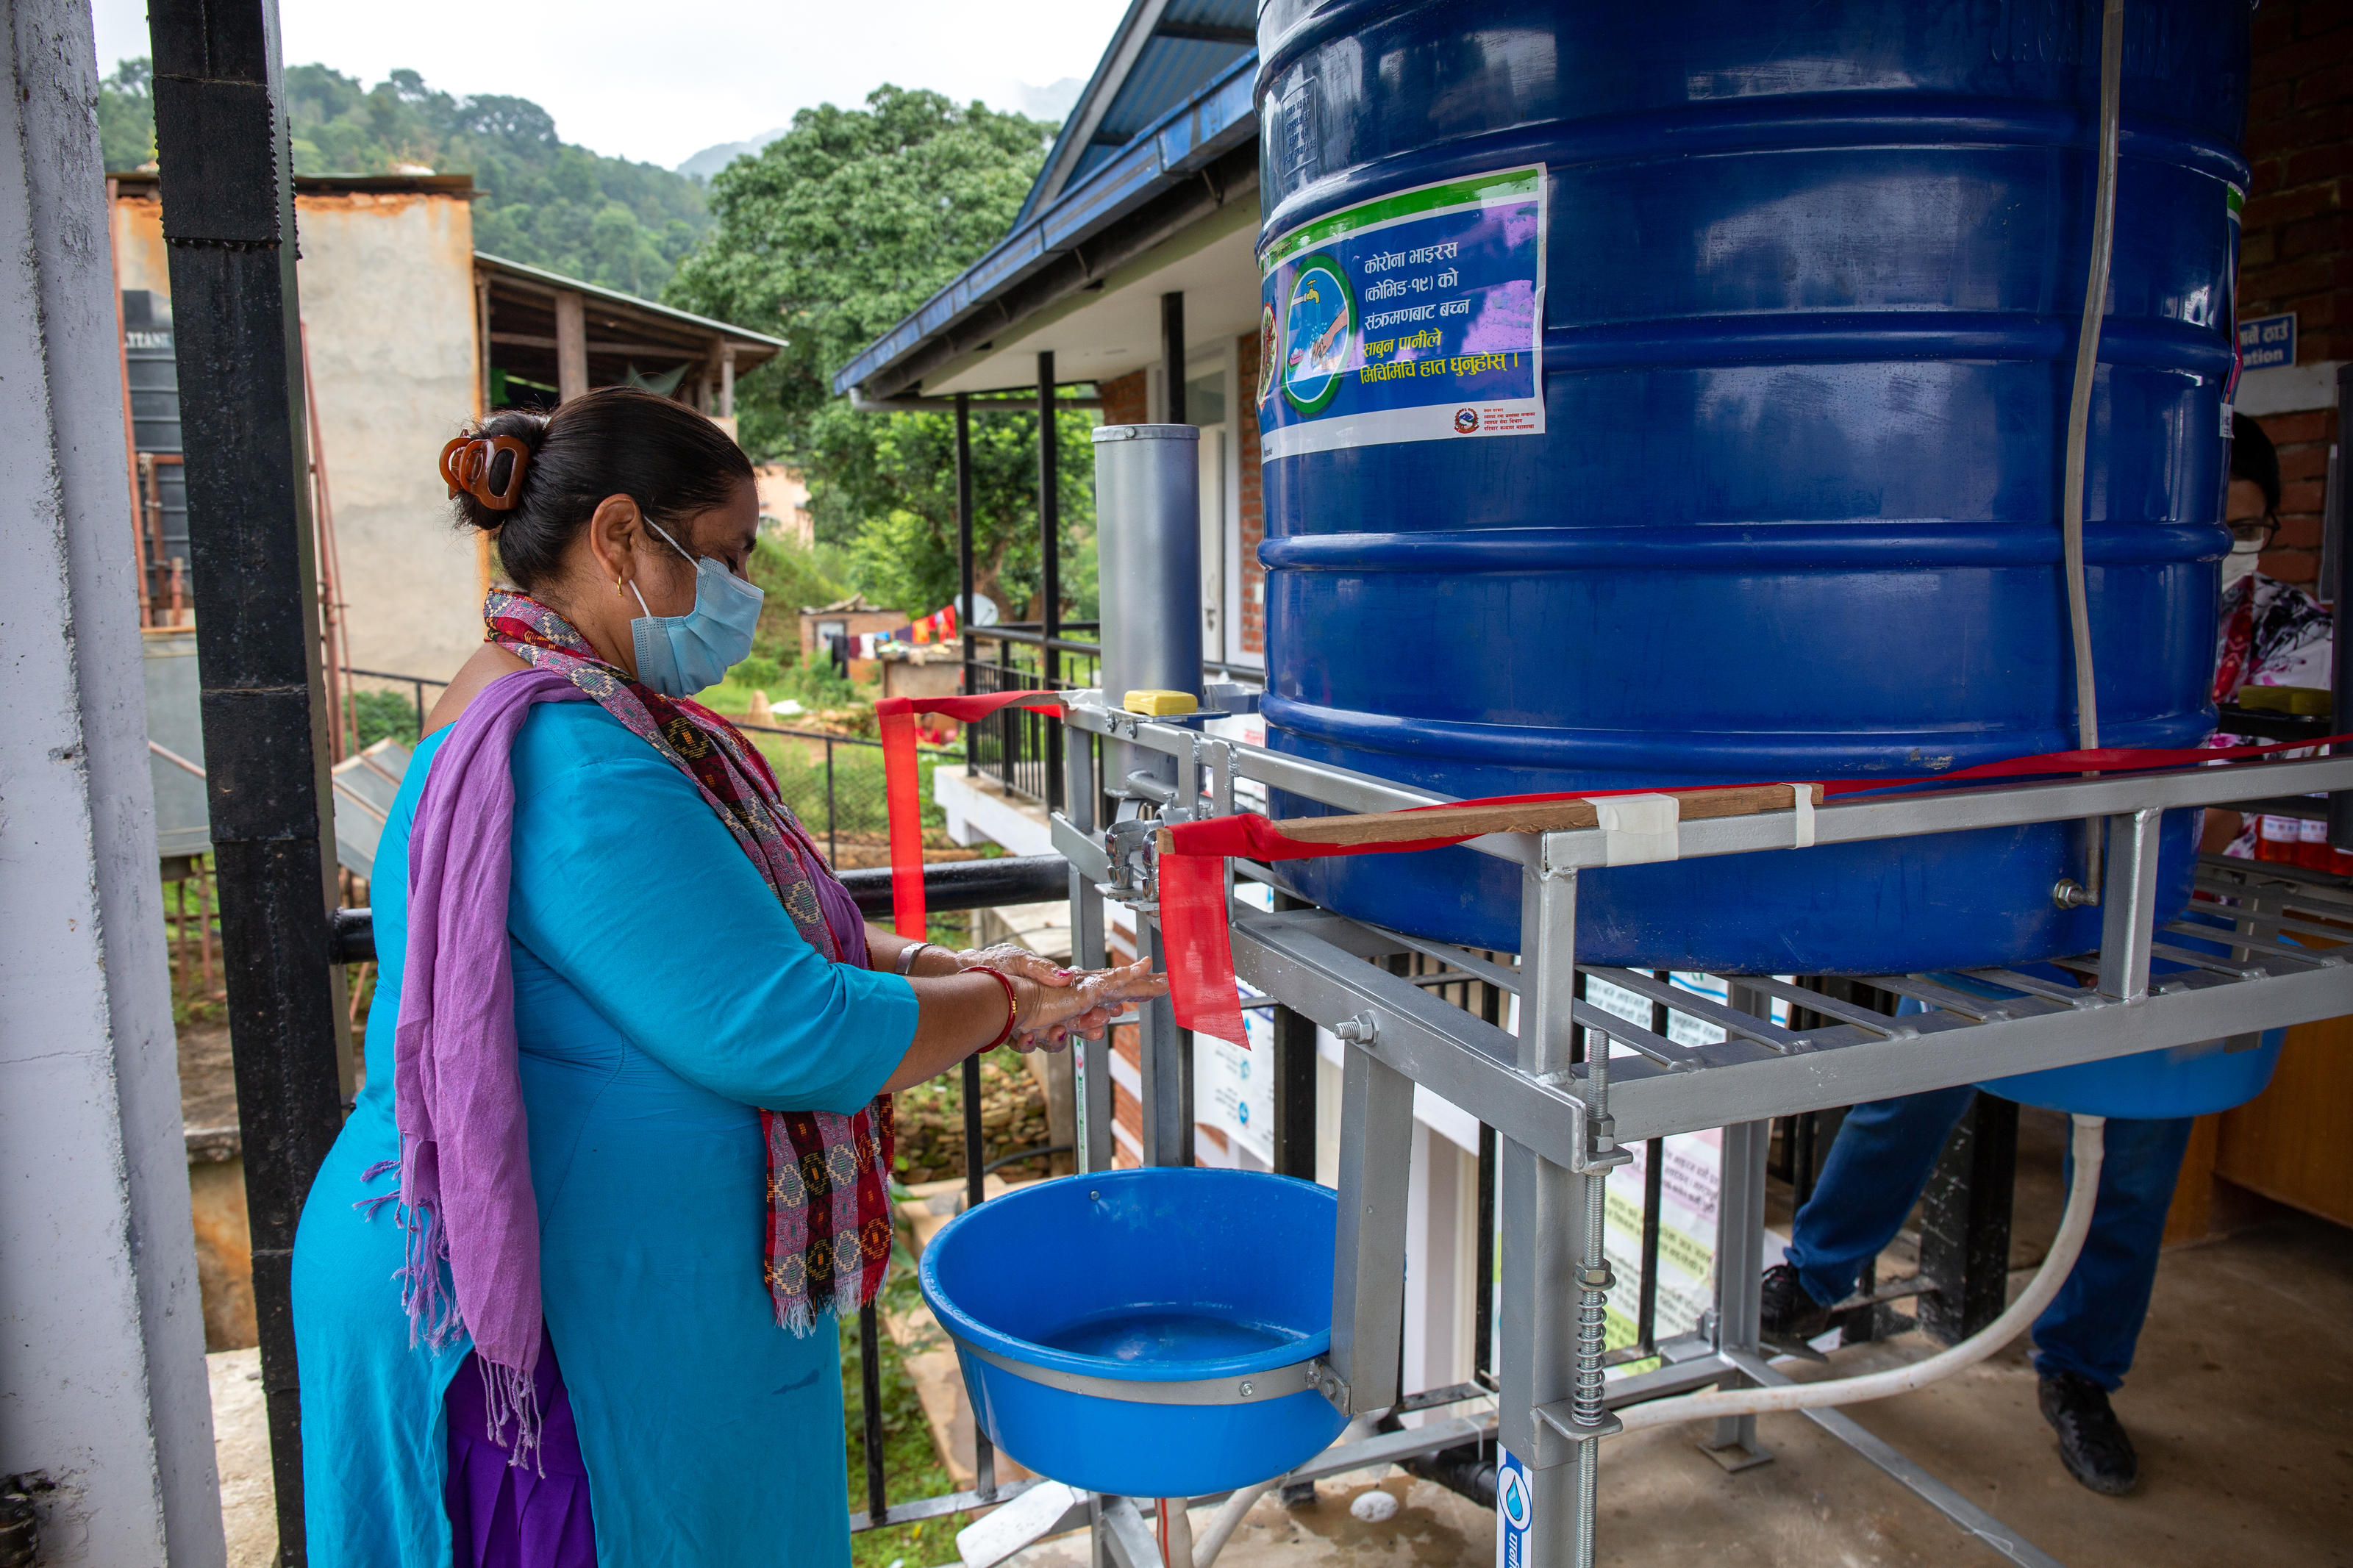 Sunita Kharel, senior auxiliary nurse midwife, Healthpost incharge, Bhumlutaar health post, washing her hands at a contactless handwashing station in Bhumlutaar, Kavre, Nepal, Sep 2020.